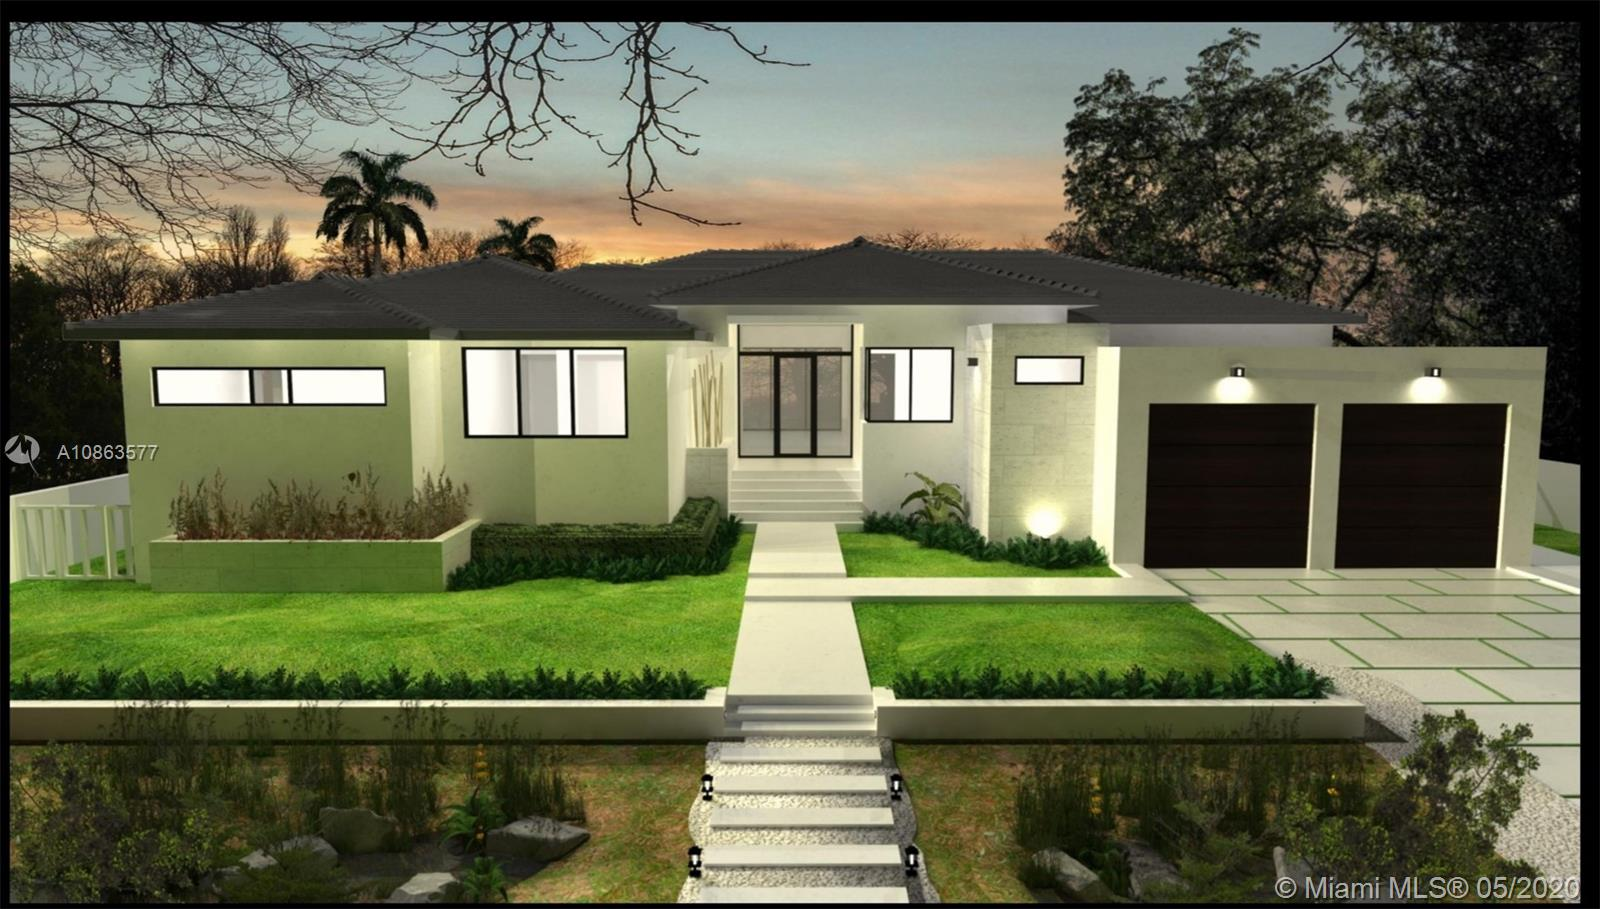 1010 NE 72nd Terrace, Miami, Florida 33138, 4 Bedrooms Bedrooms, ,5 BathroomsBathrooms,Residential,For Sale,1010 NE 72nd Terrace,A10863577